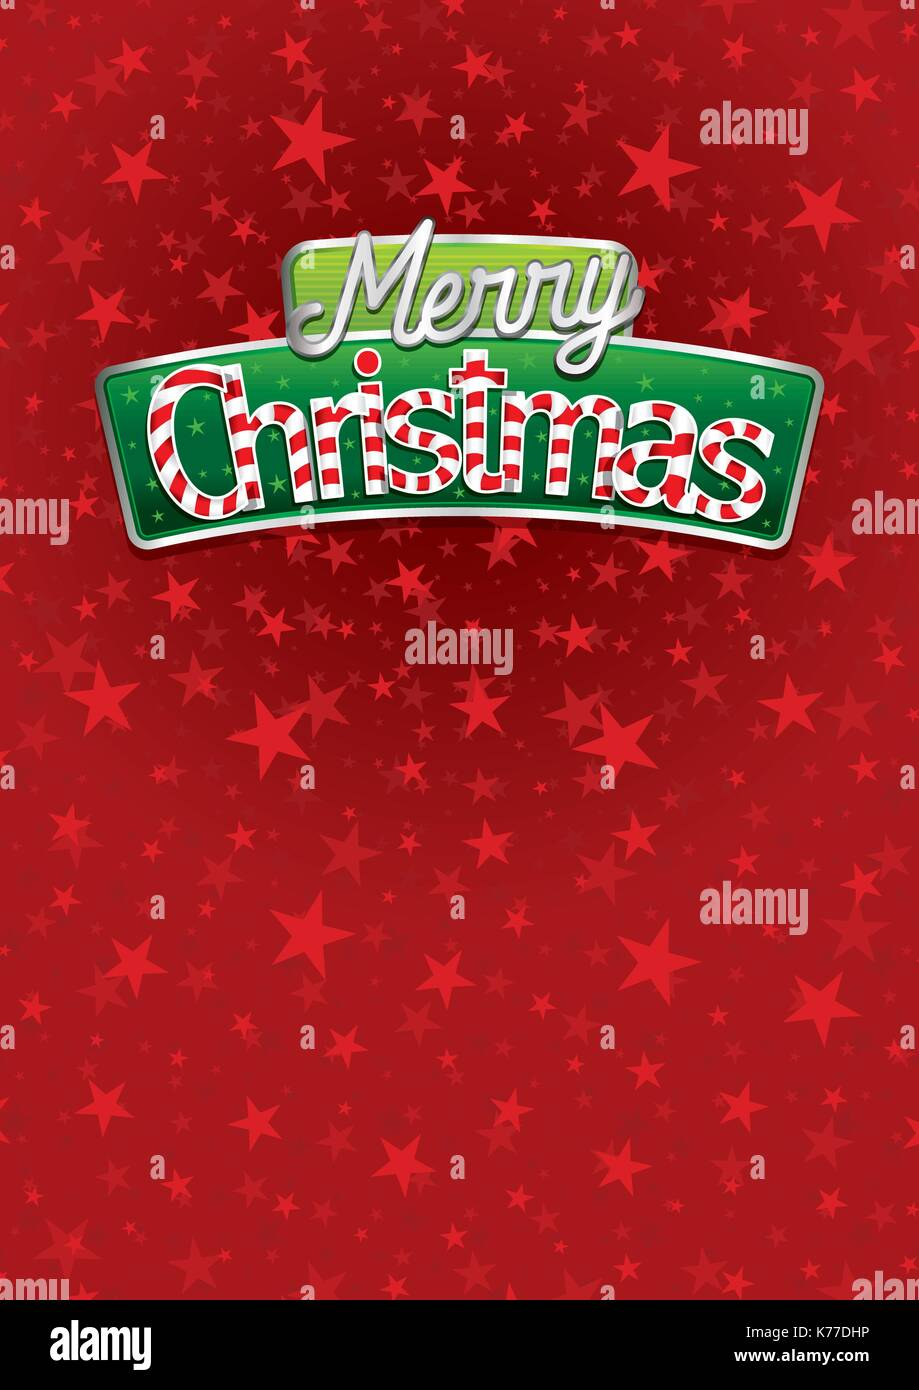 Merry christmas lettering red cover of greeting card with stars red cover of greeting card with stars texture in background layout size 21 cm x 297 cm a4 size lettering design kristyandbryce Images